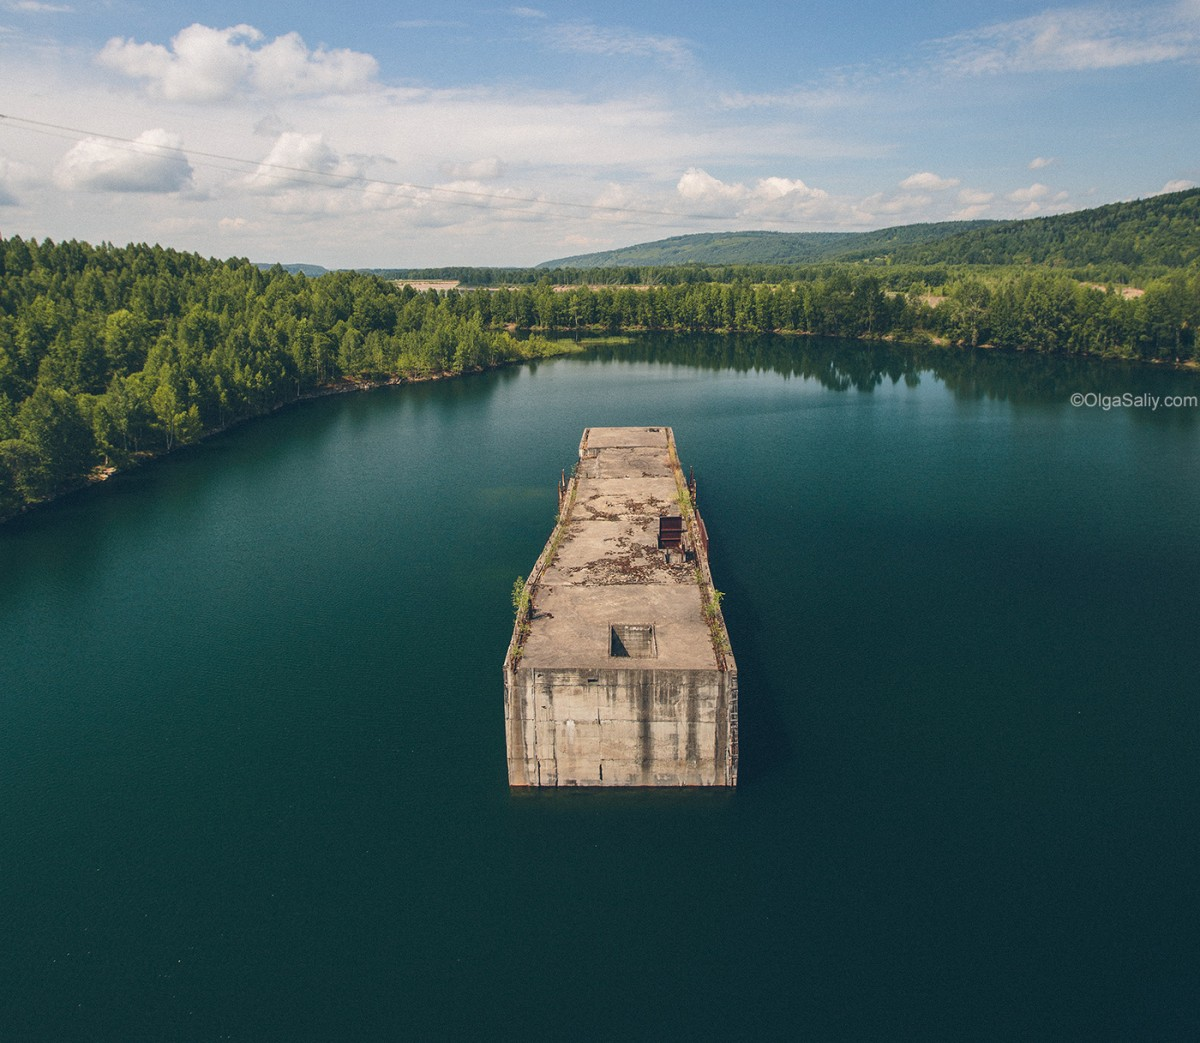 Abandoned Hydroelectricity Dam in Russia (3)